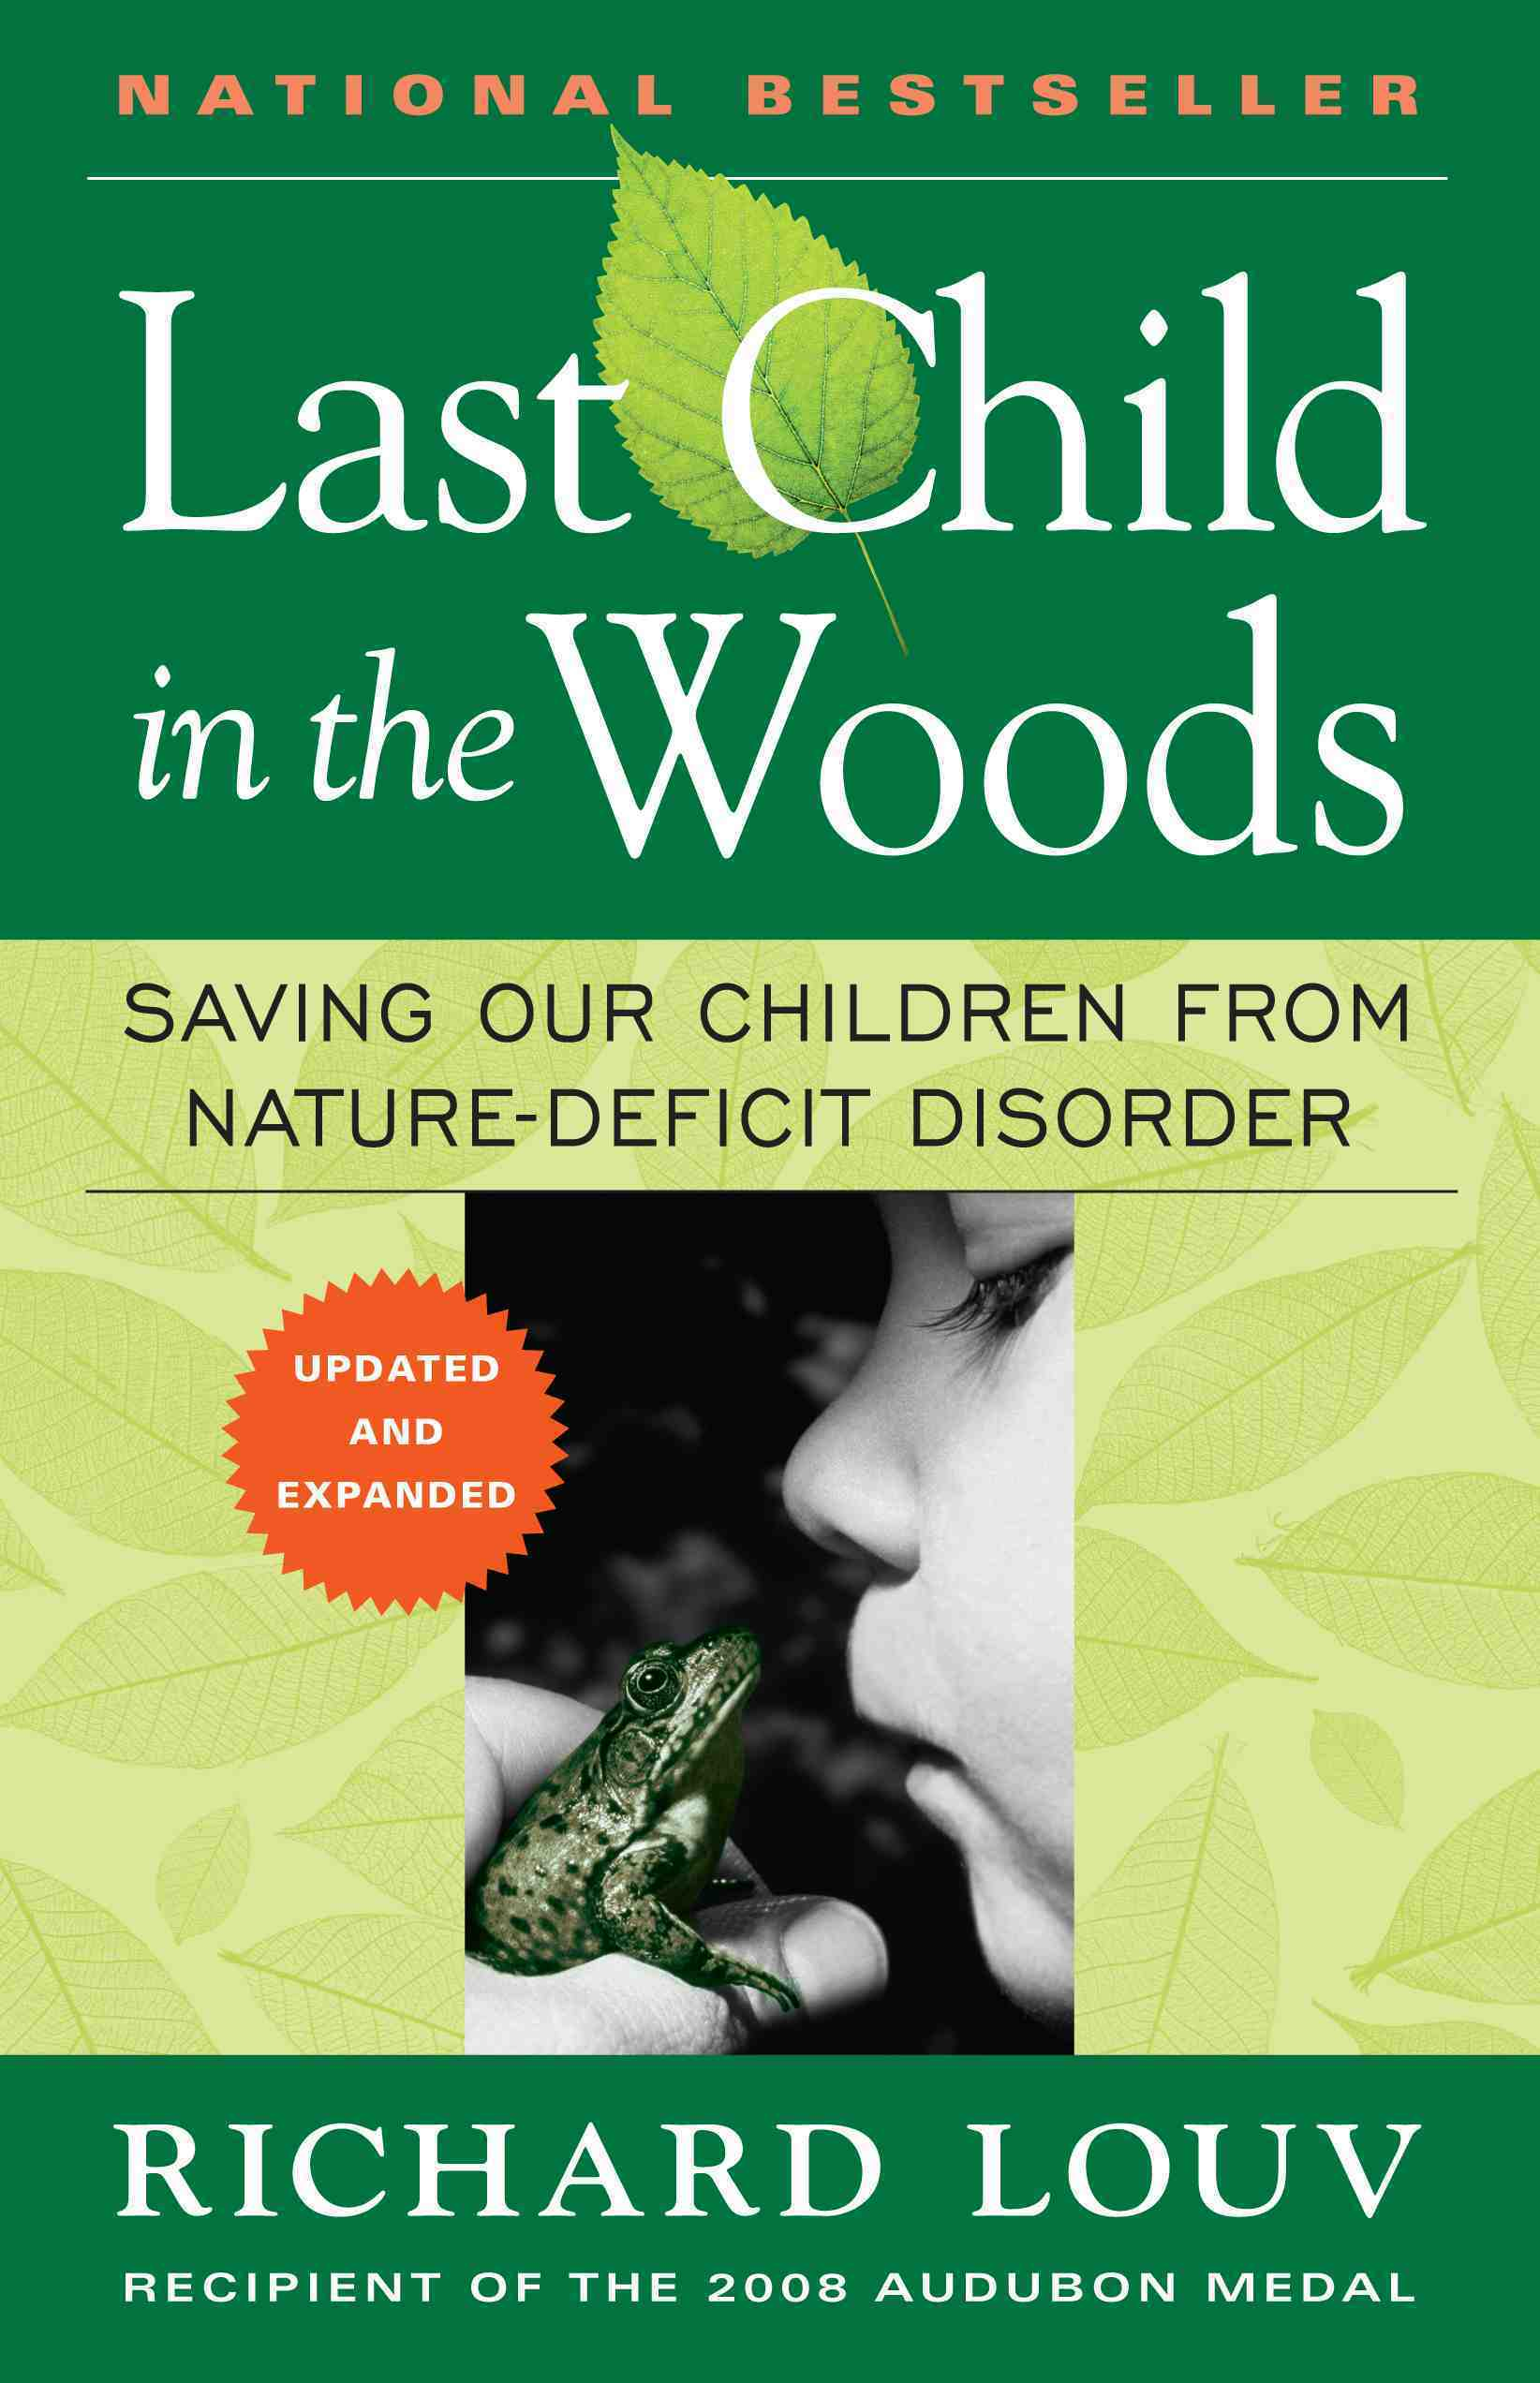 Quotes About Nature Deficit Disorder 18 Quotes